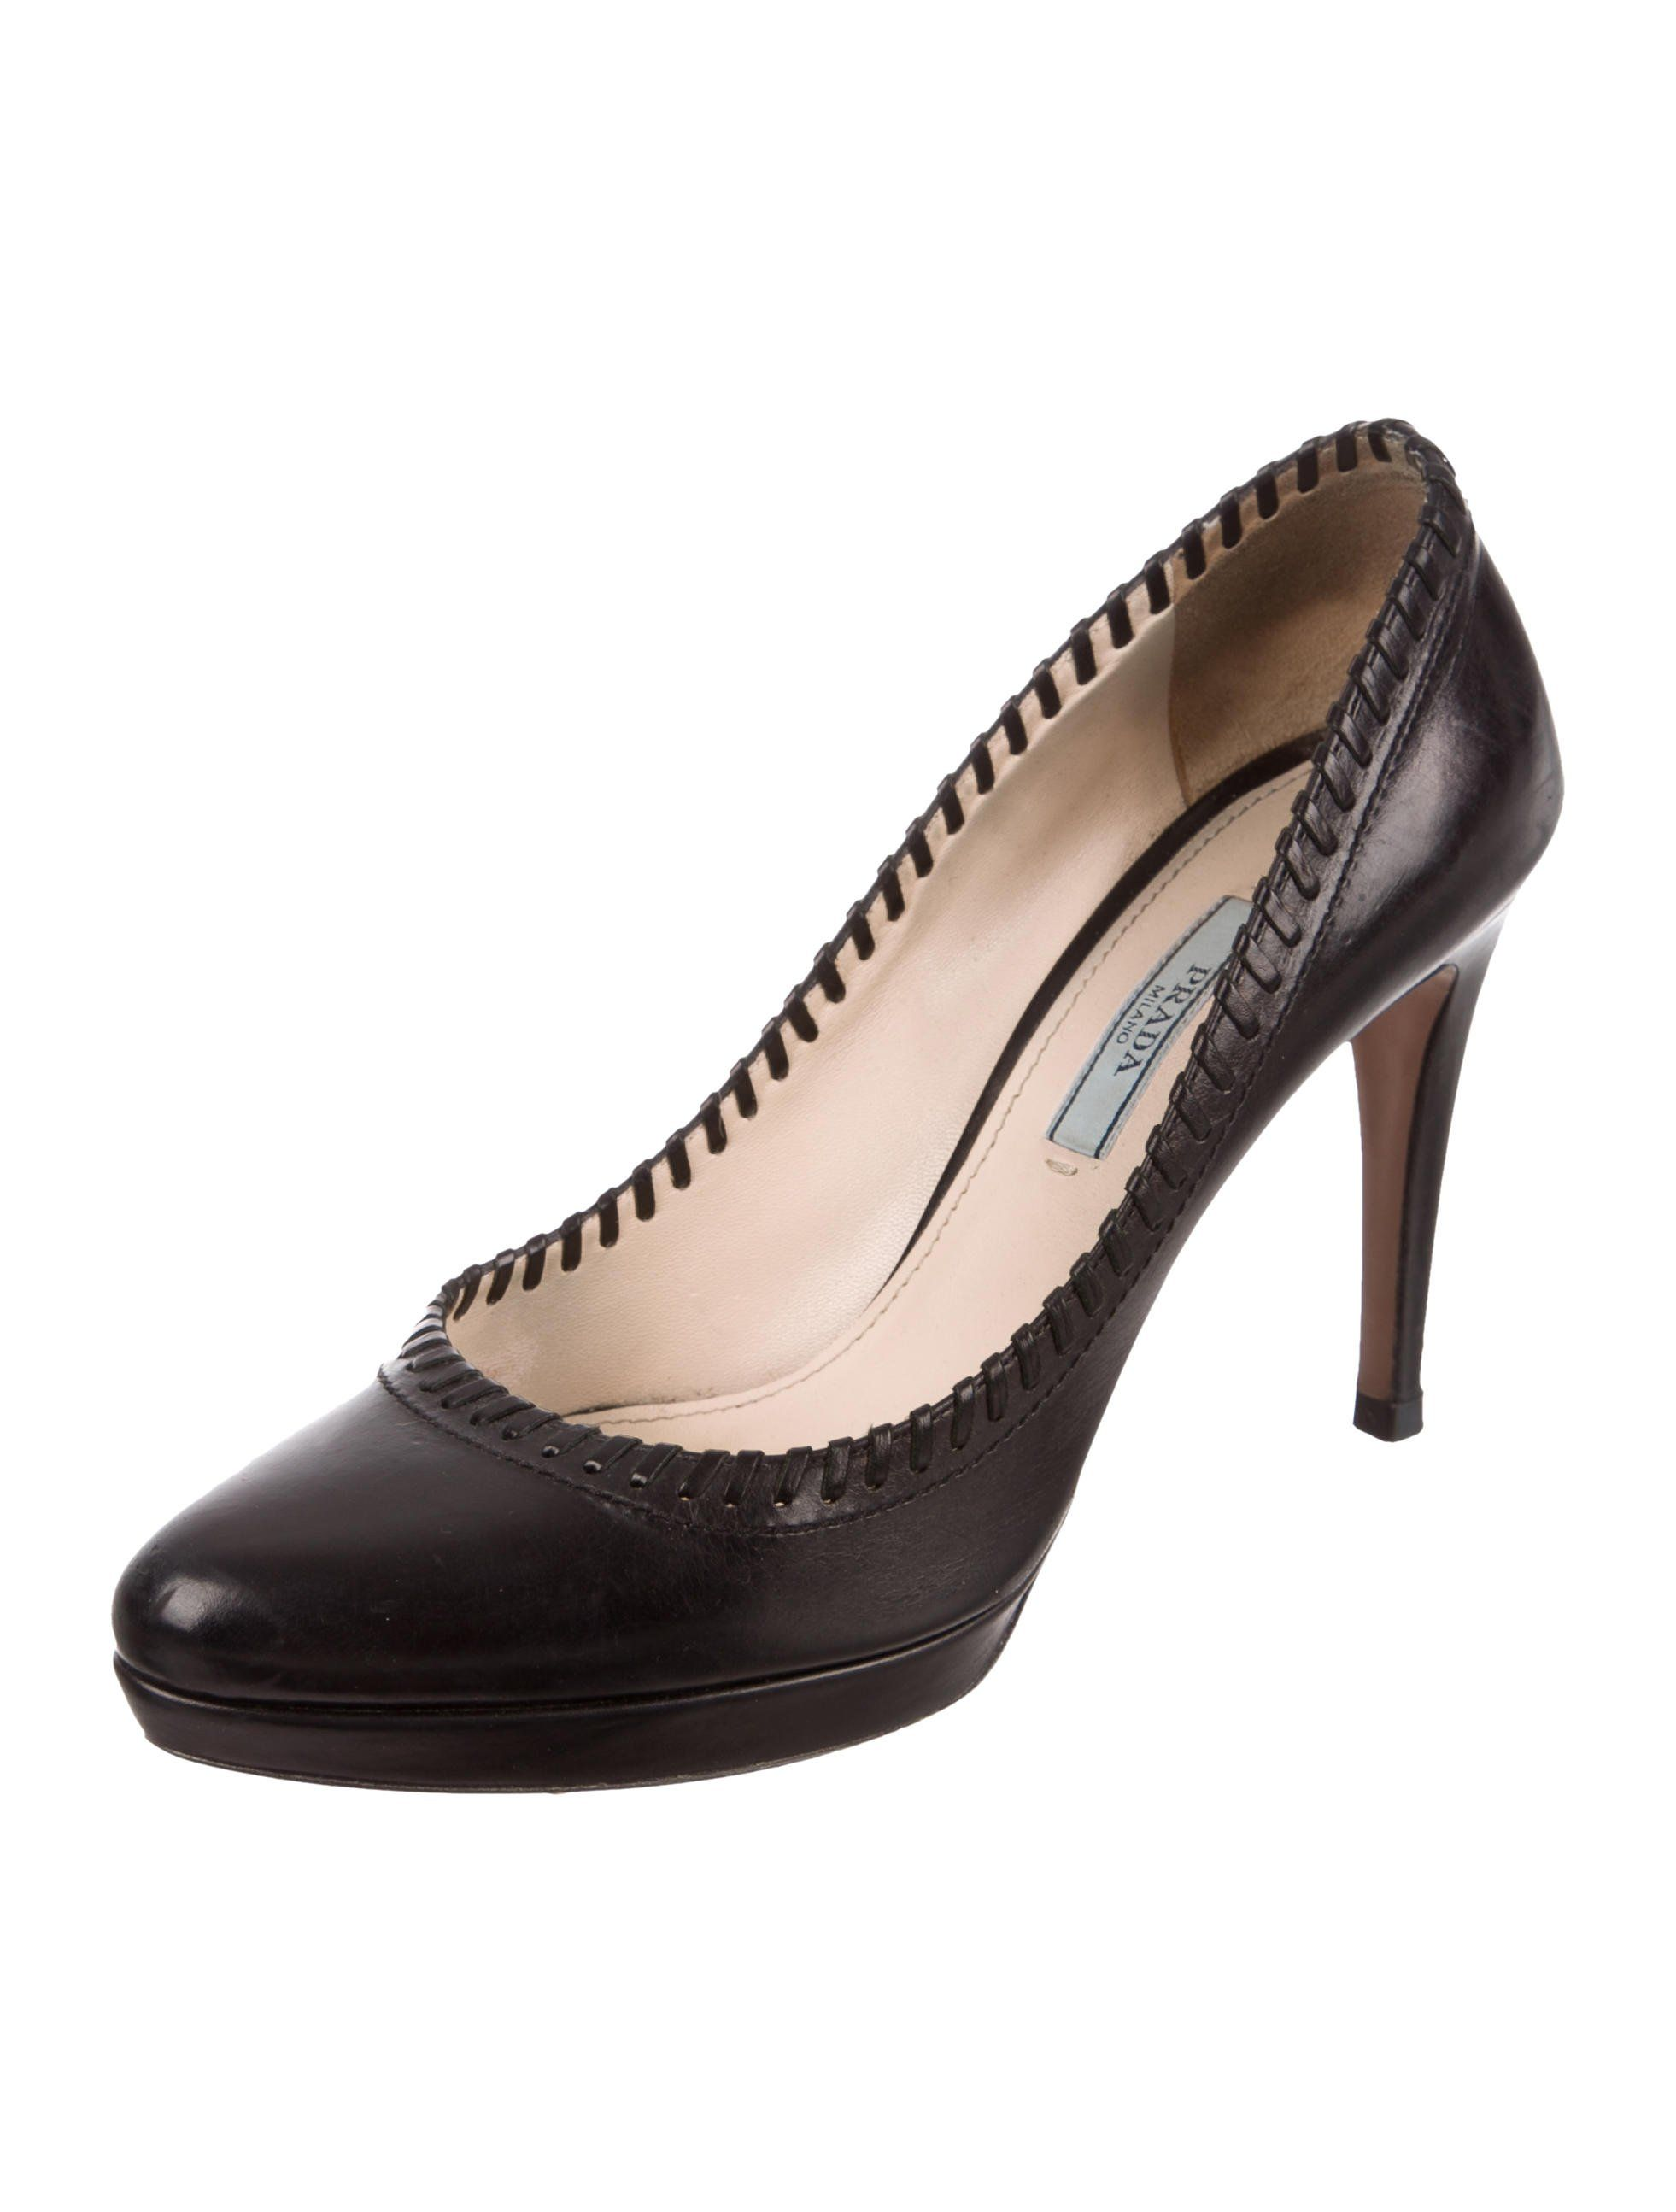 03ec501ad6a Black leather Prada semi pointed-toe platform pumps with tonal whipstitched  trim at top lines and covered heels. Includes dust bag.